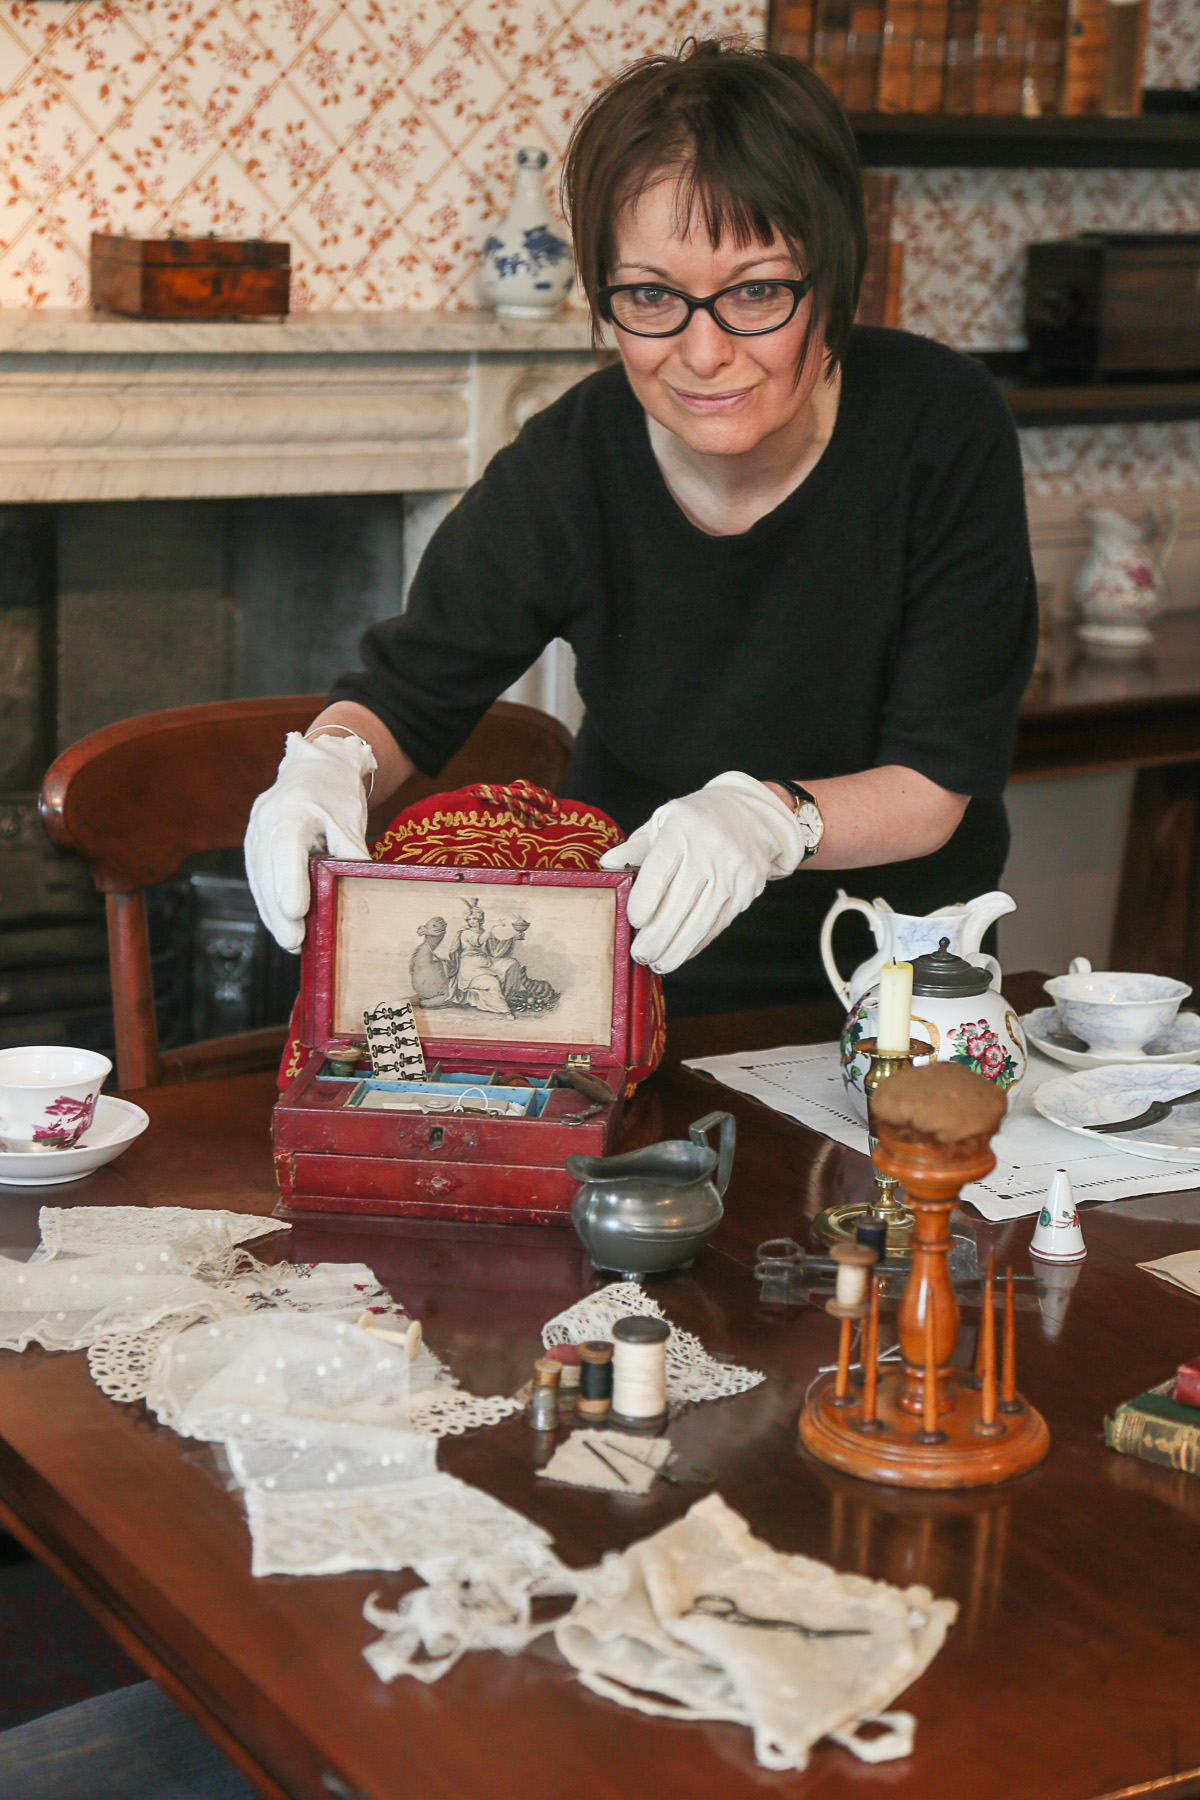 Ann Dinsdale gets gloved-up to help clean the delicate objects on display